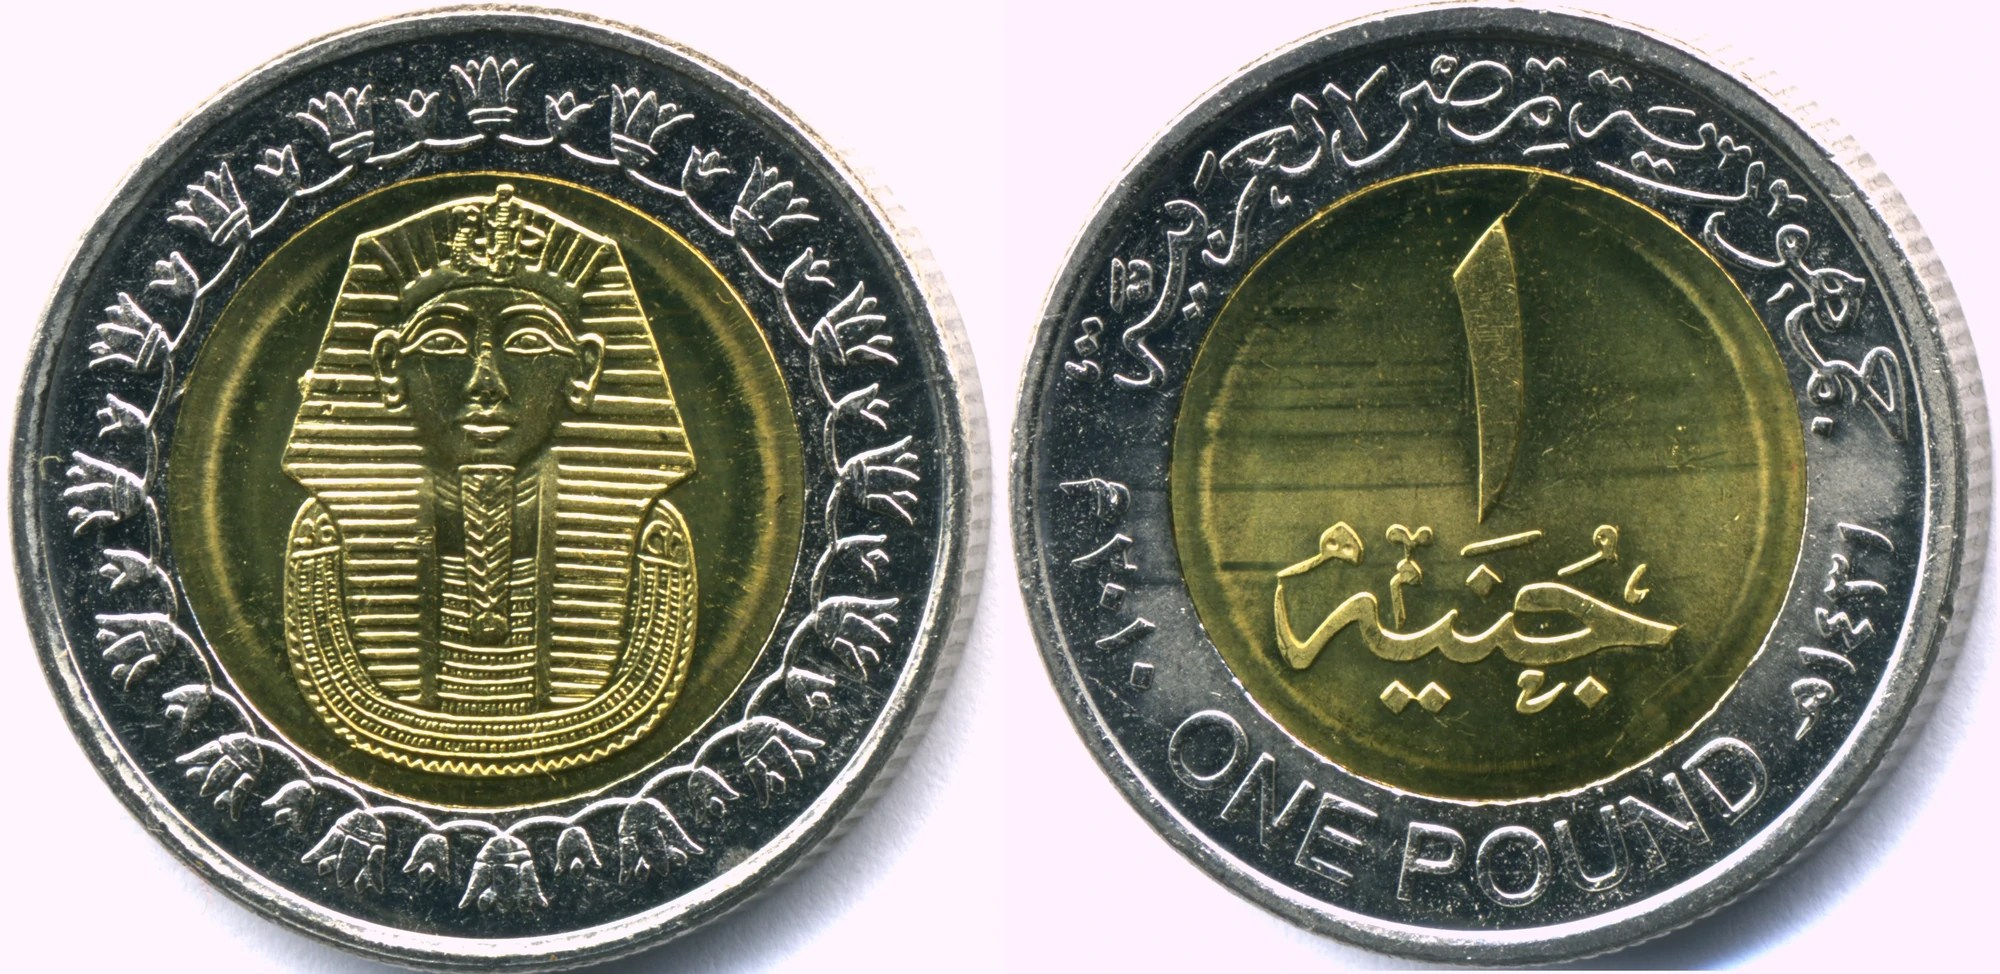 Cambio Euro Libra Egipcia Egyptian 1 Pound Coin Currency Wiki Fandom Powered By